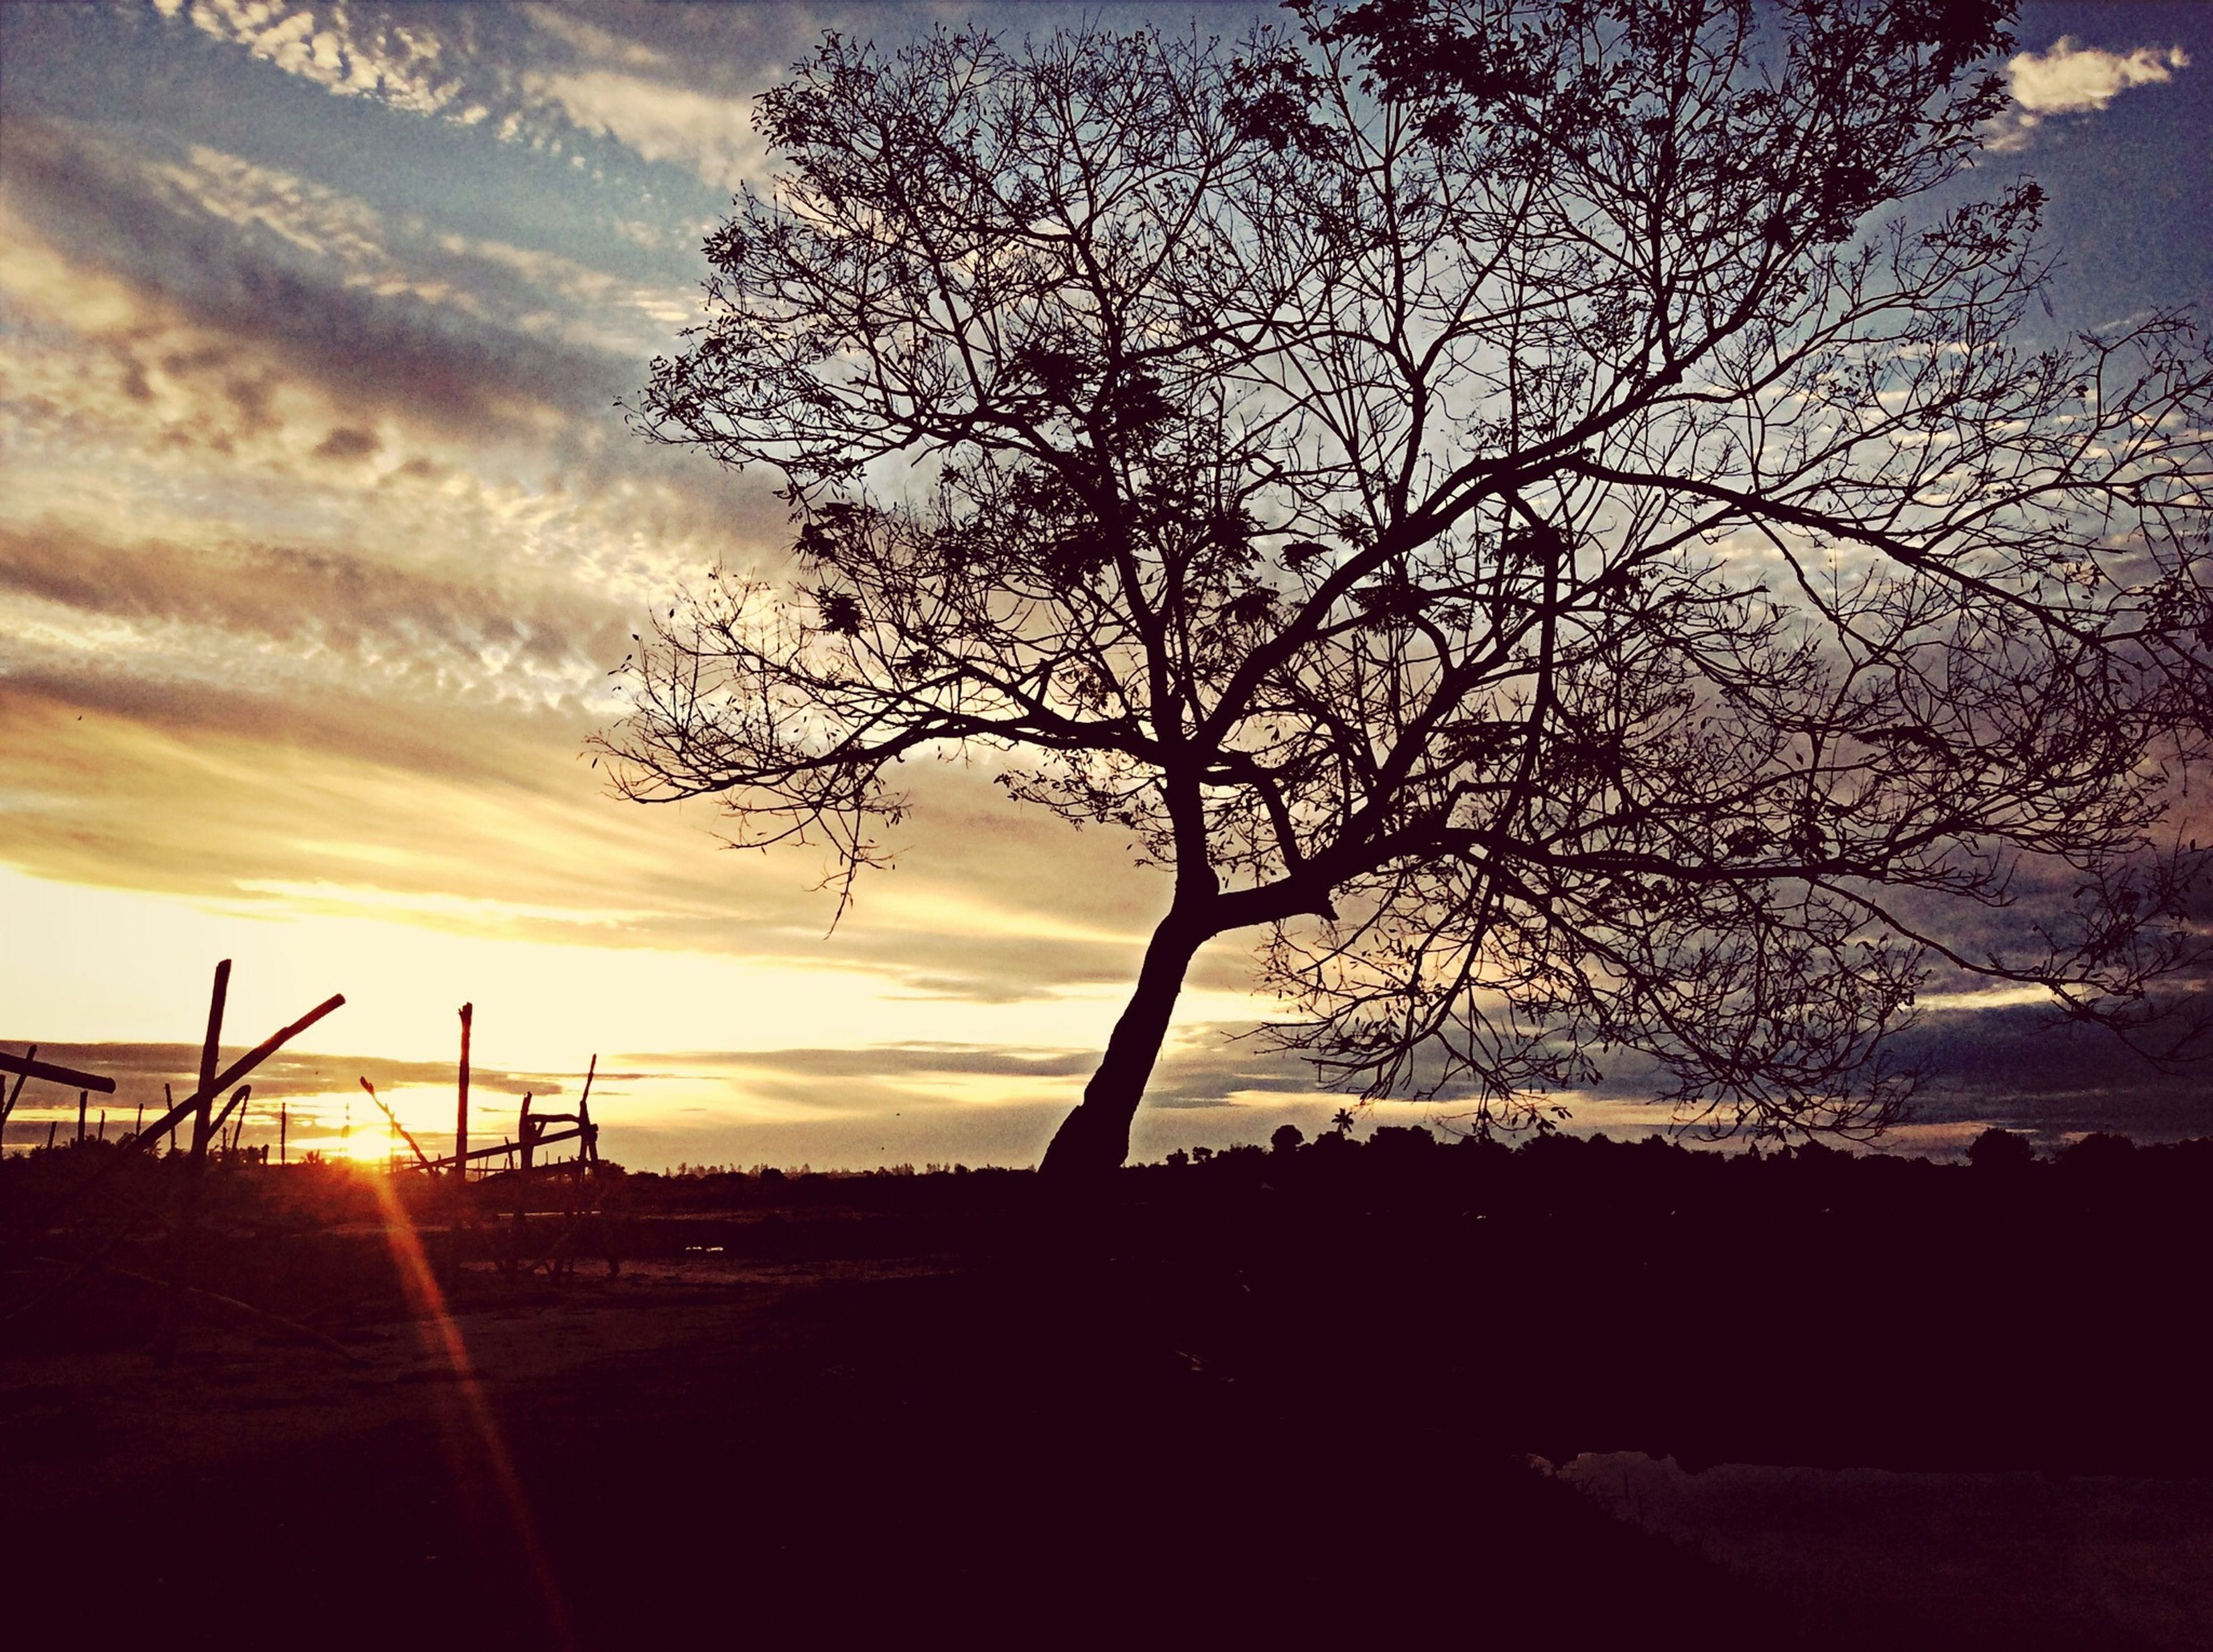 sunset, silhouette, tree, sky, tranquility, tranquil scene, bare tree, scenics, beauty in nature, nature, branch, landscape, cloud - sky, tree trunk, idyllic, field, cloud, sun, sunlight, non-urban scene